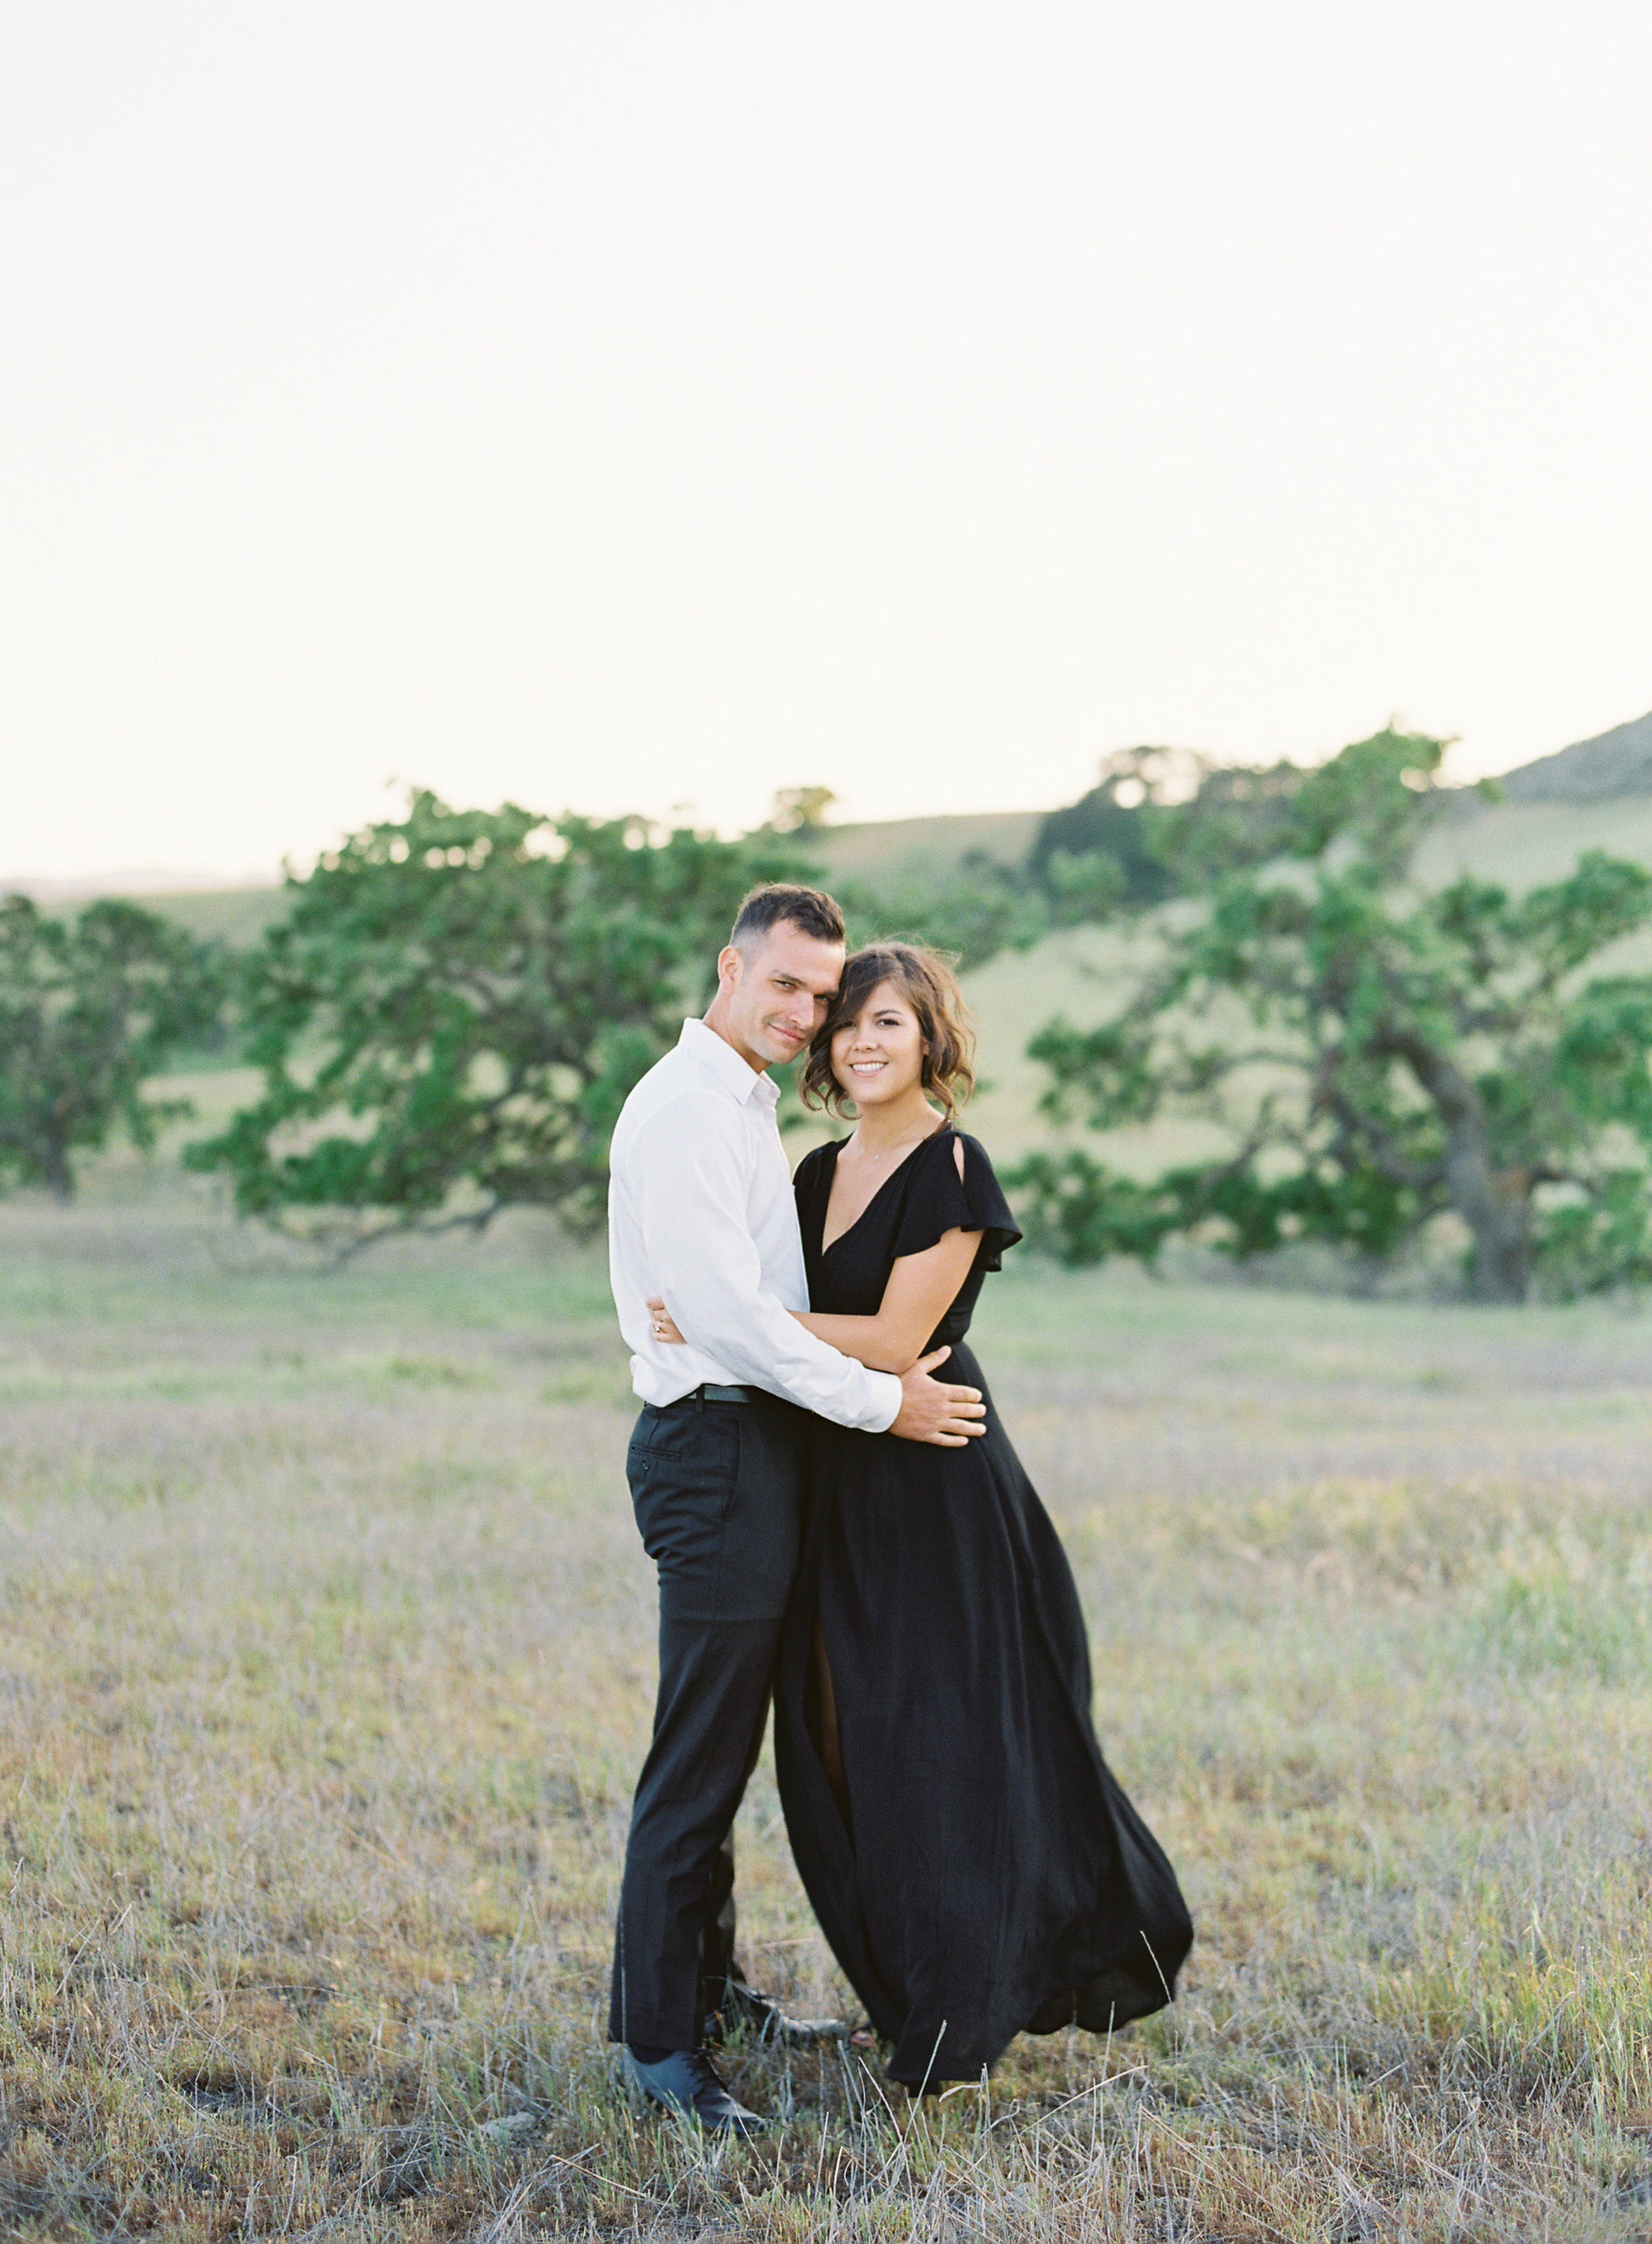 blake_alyssa_engagement-67.jpg